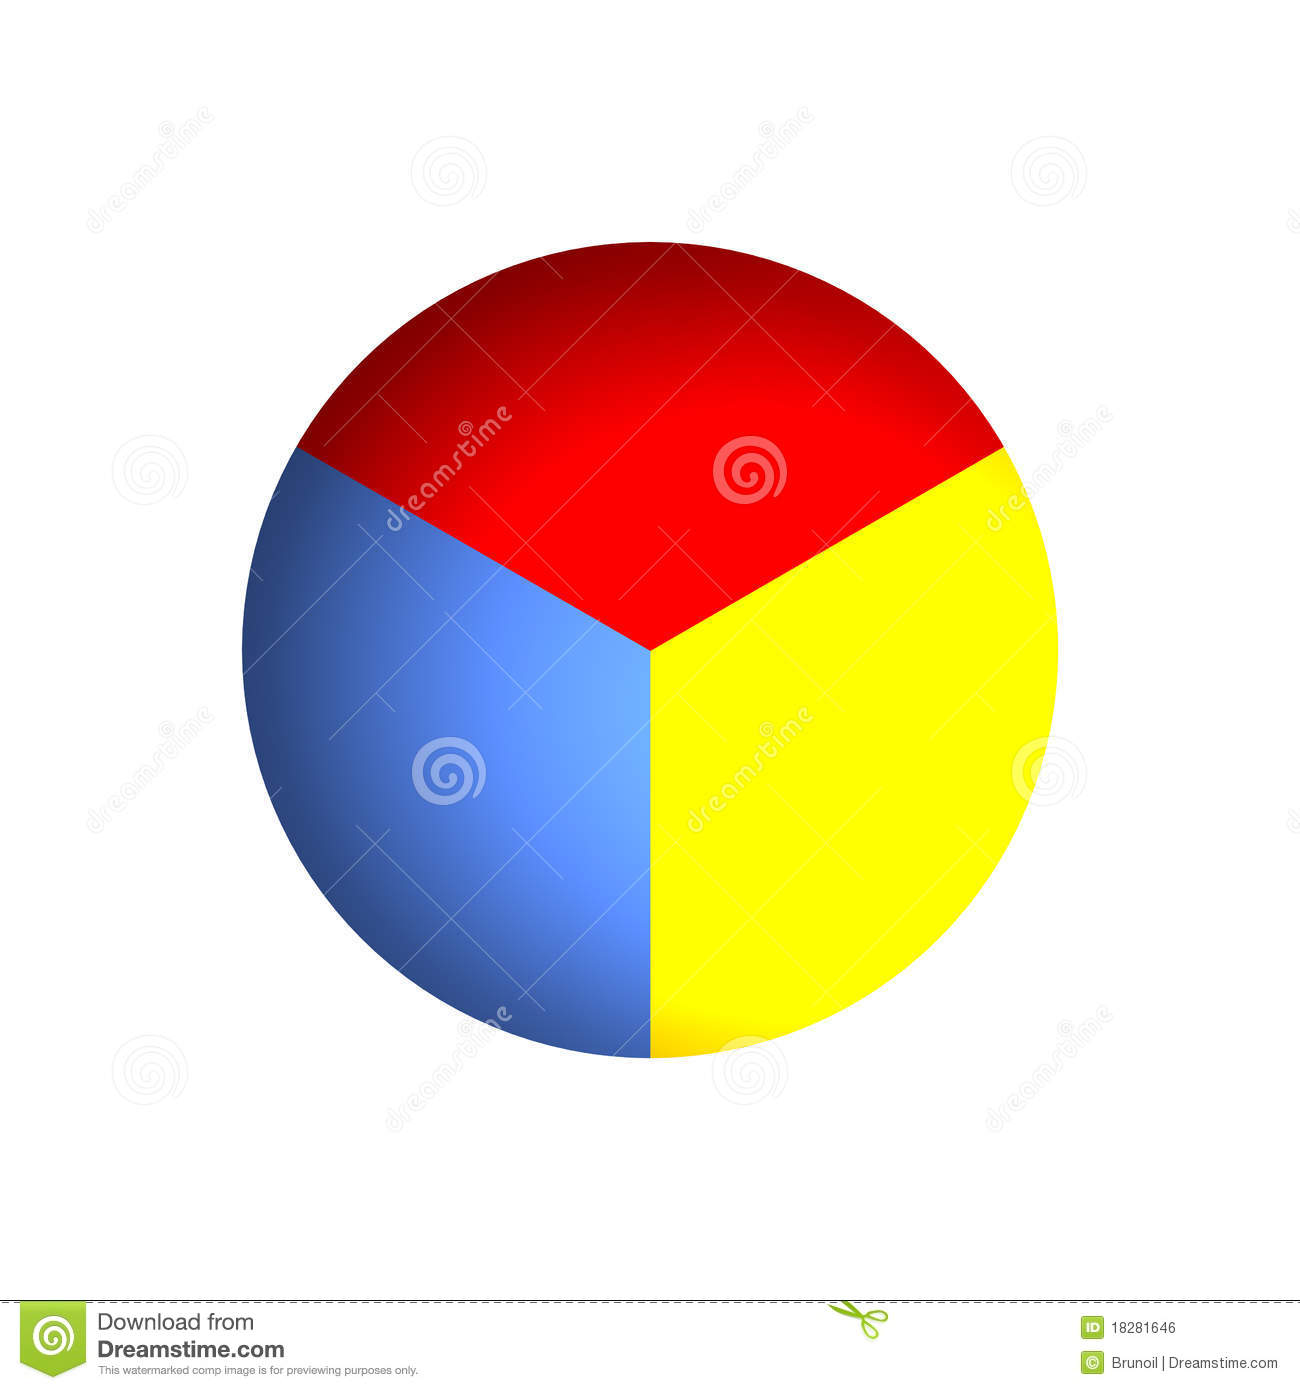 33% Business Pie Chart Royalty Free Stock Image - Image: 18281646